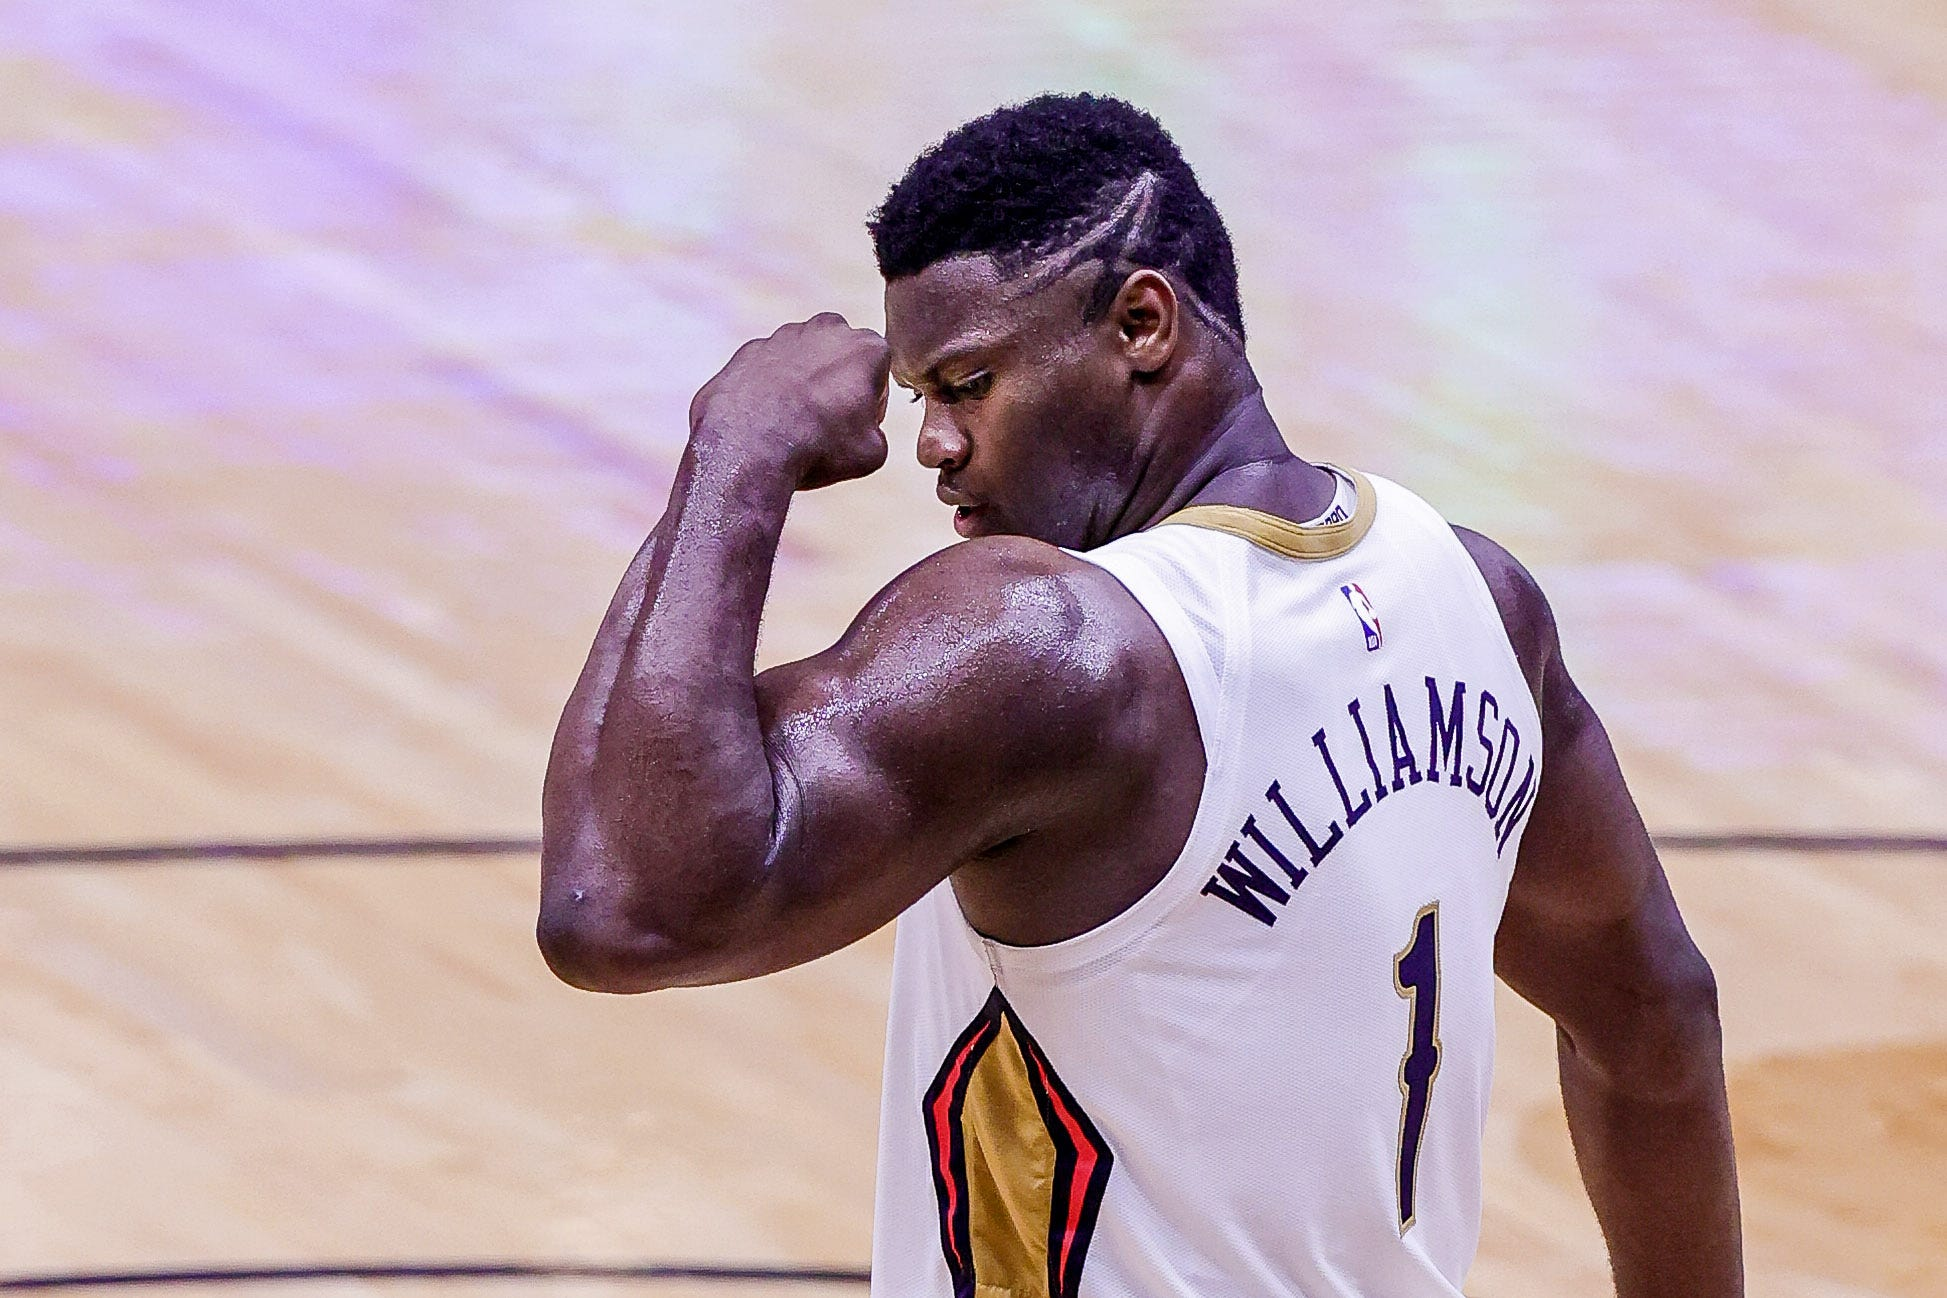 Men's basketball player Zion Williamson is an example of an athlete who would have capitalized on his persona while a freshman at Duke.